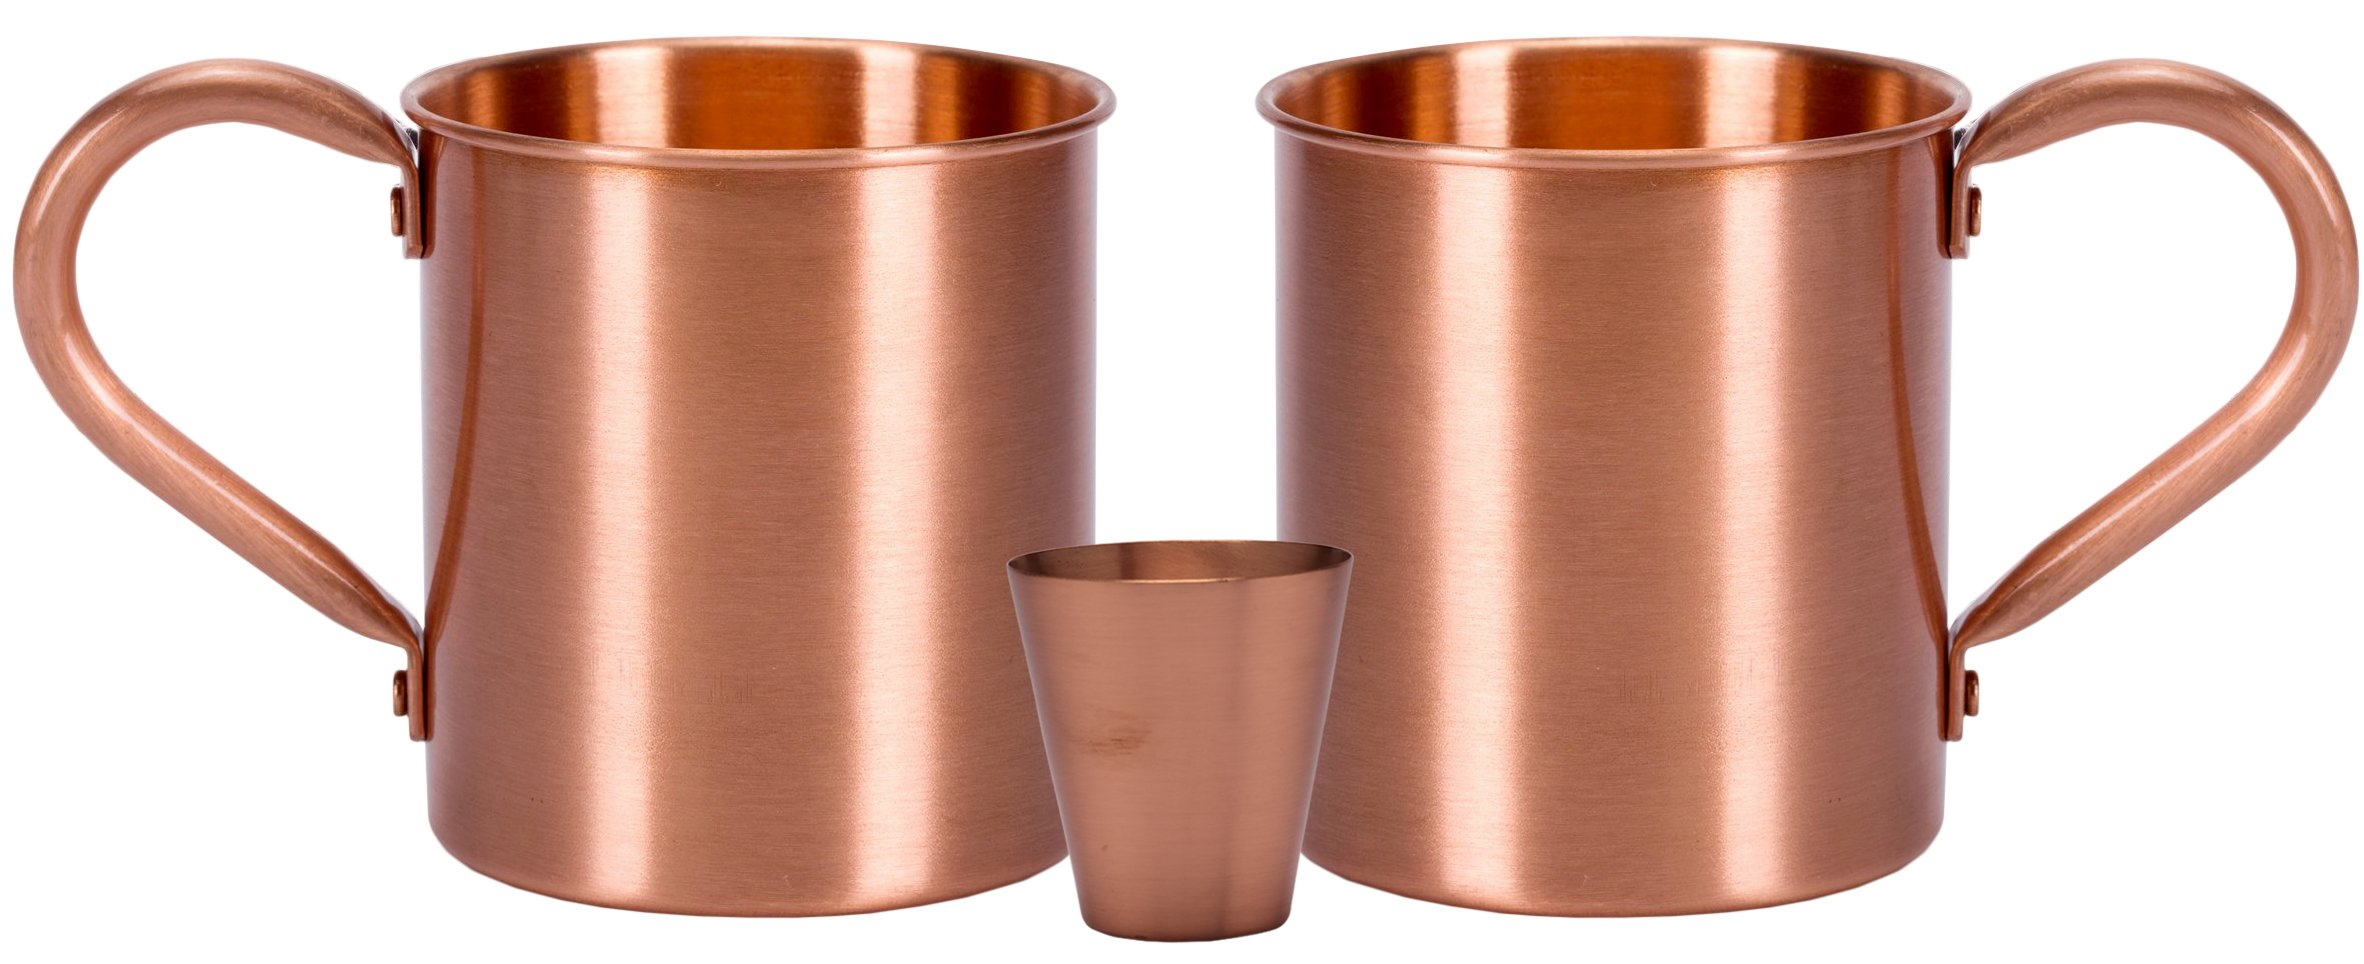 Melange 20 Oz Copper Classic Mug for Moscow Mules, Set of 2 with One Shot Glass - Heavy Gauge - No Lining - Includes Free Recipe Card